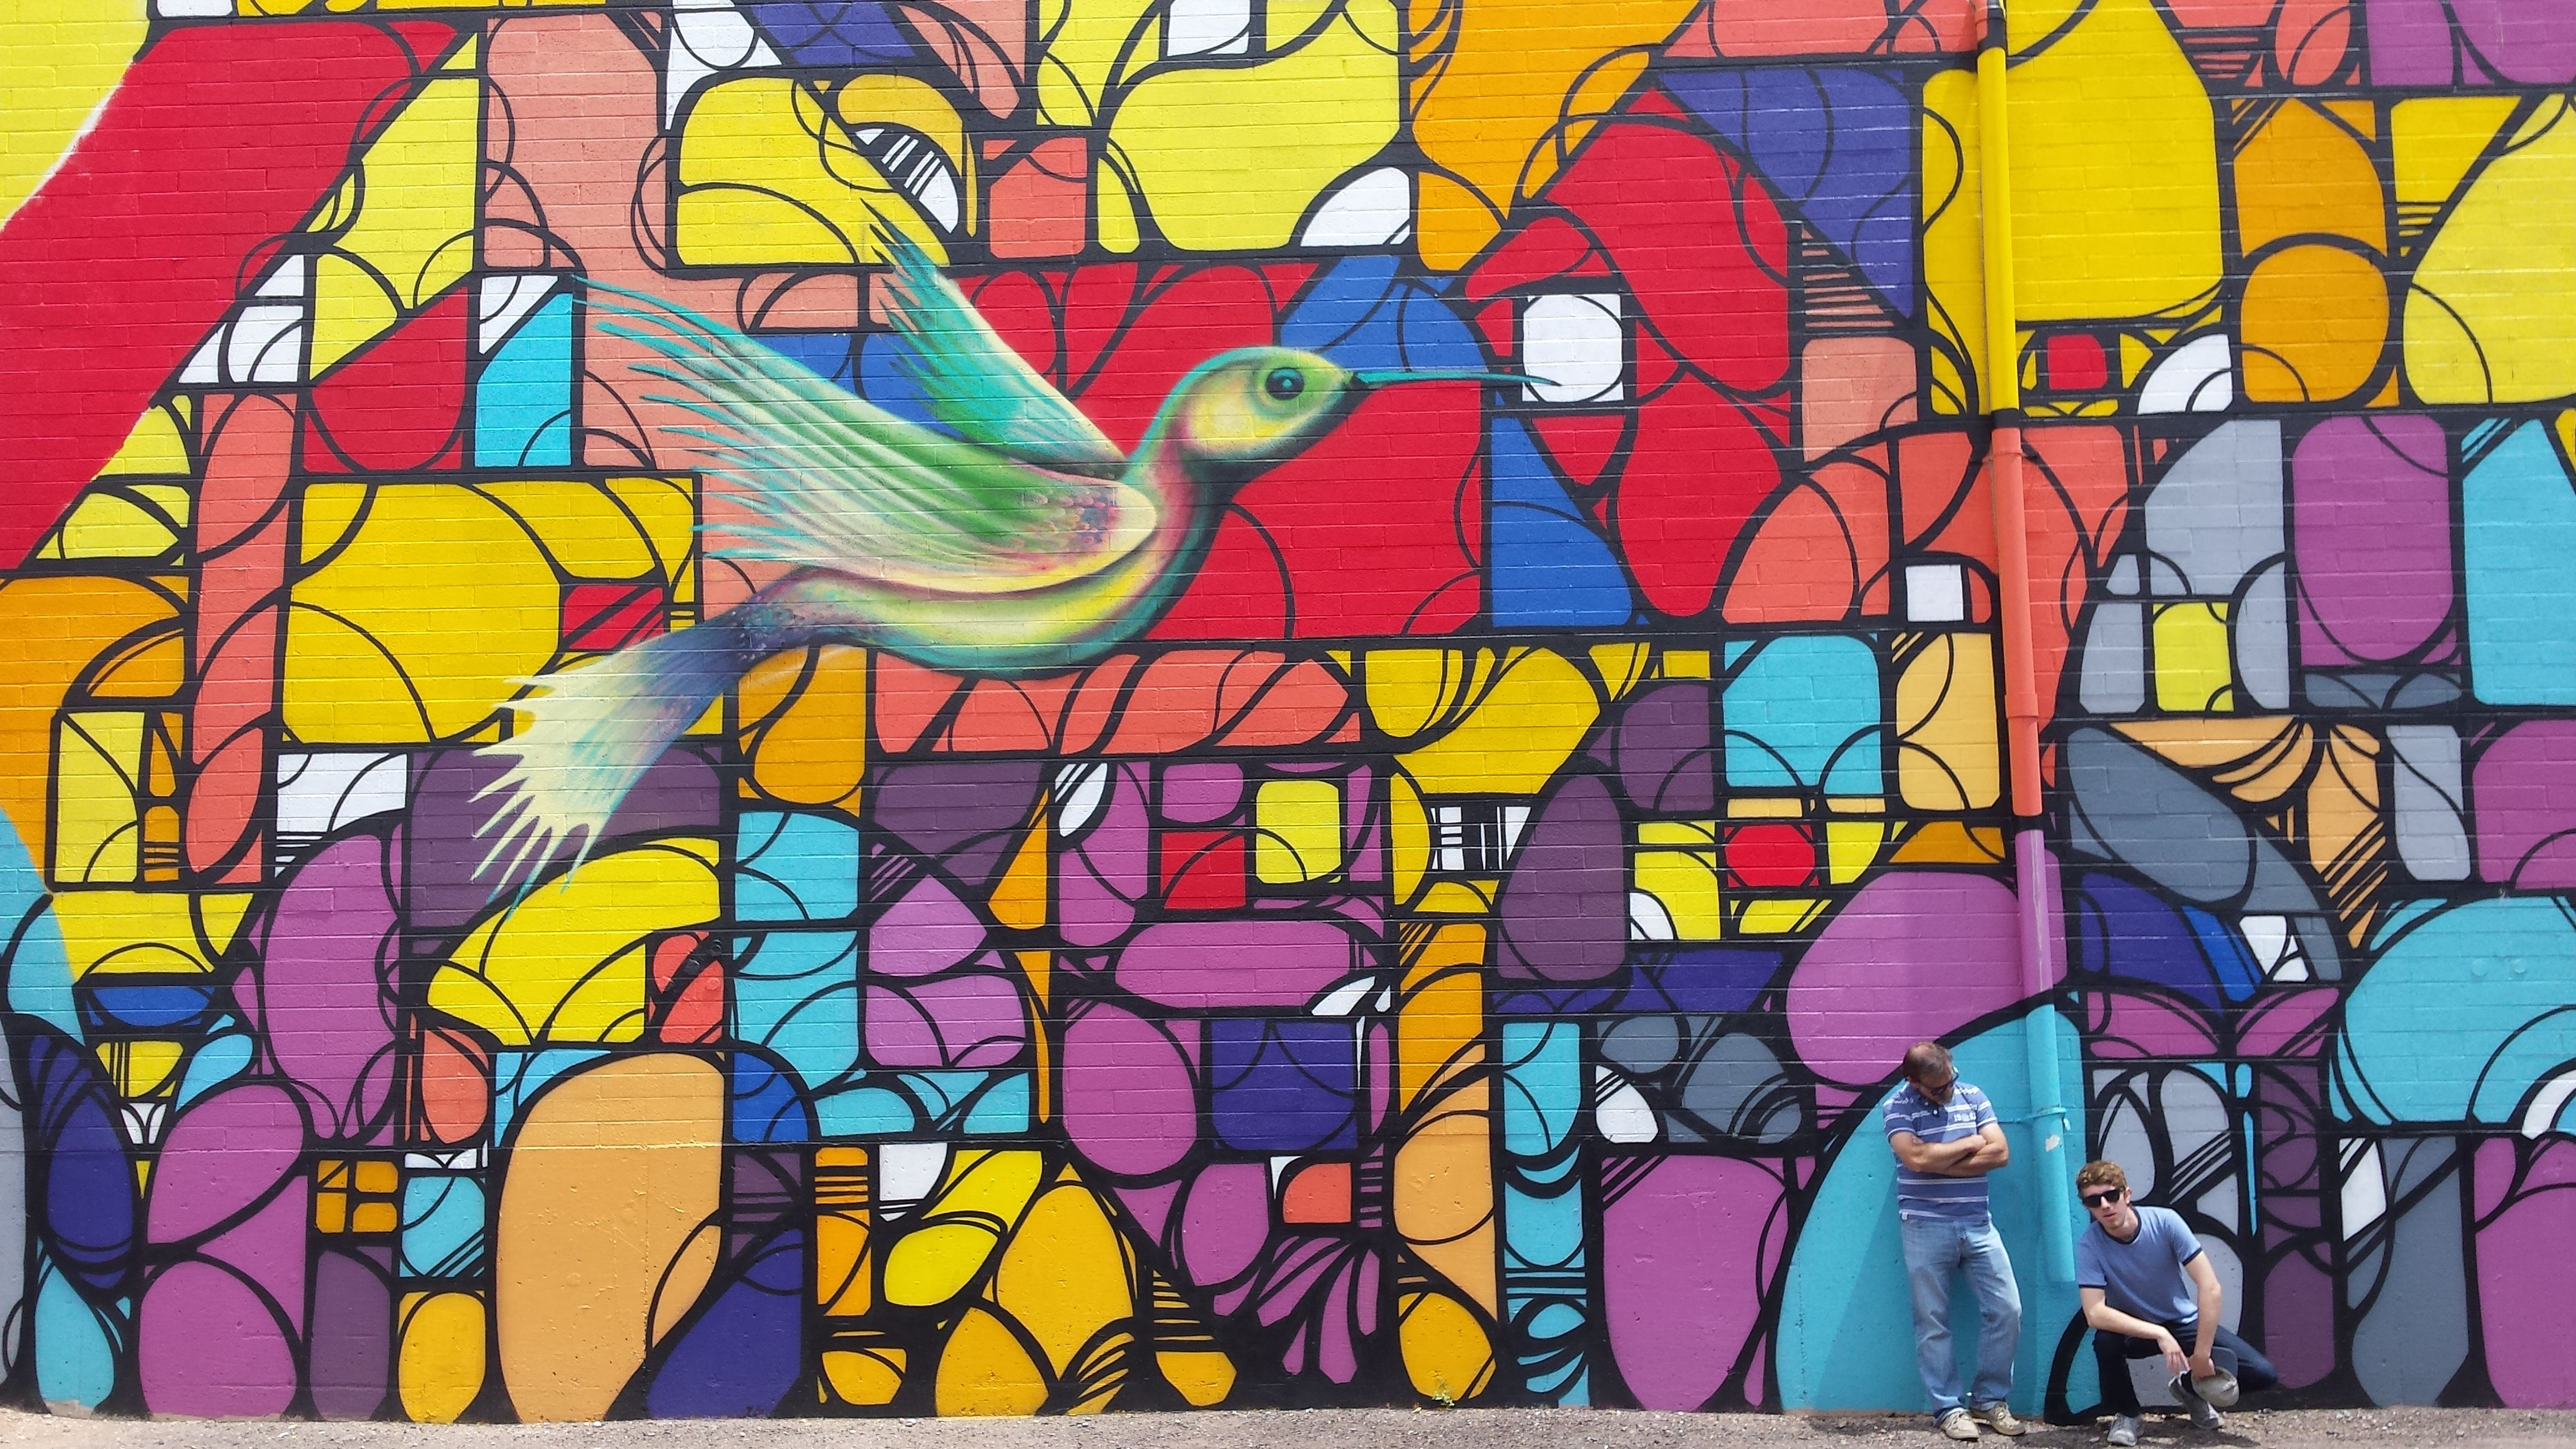 Wall Mural Outside Zinnias At Melrose Place In Phoenix An Eclectic